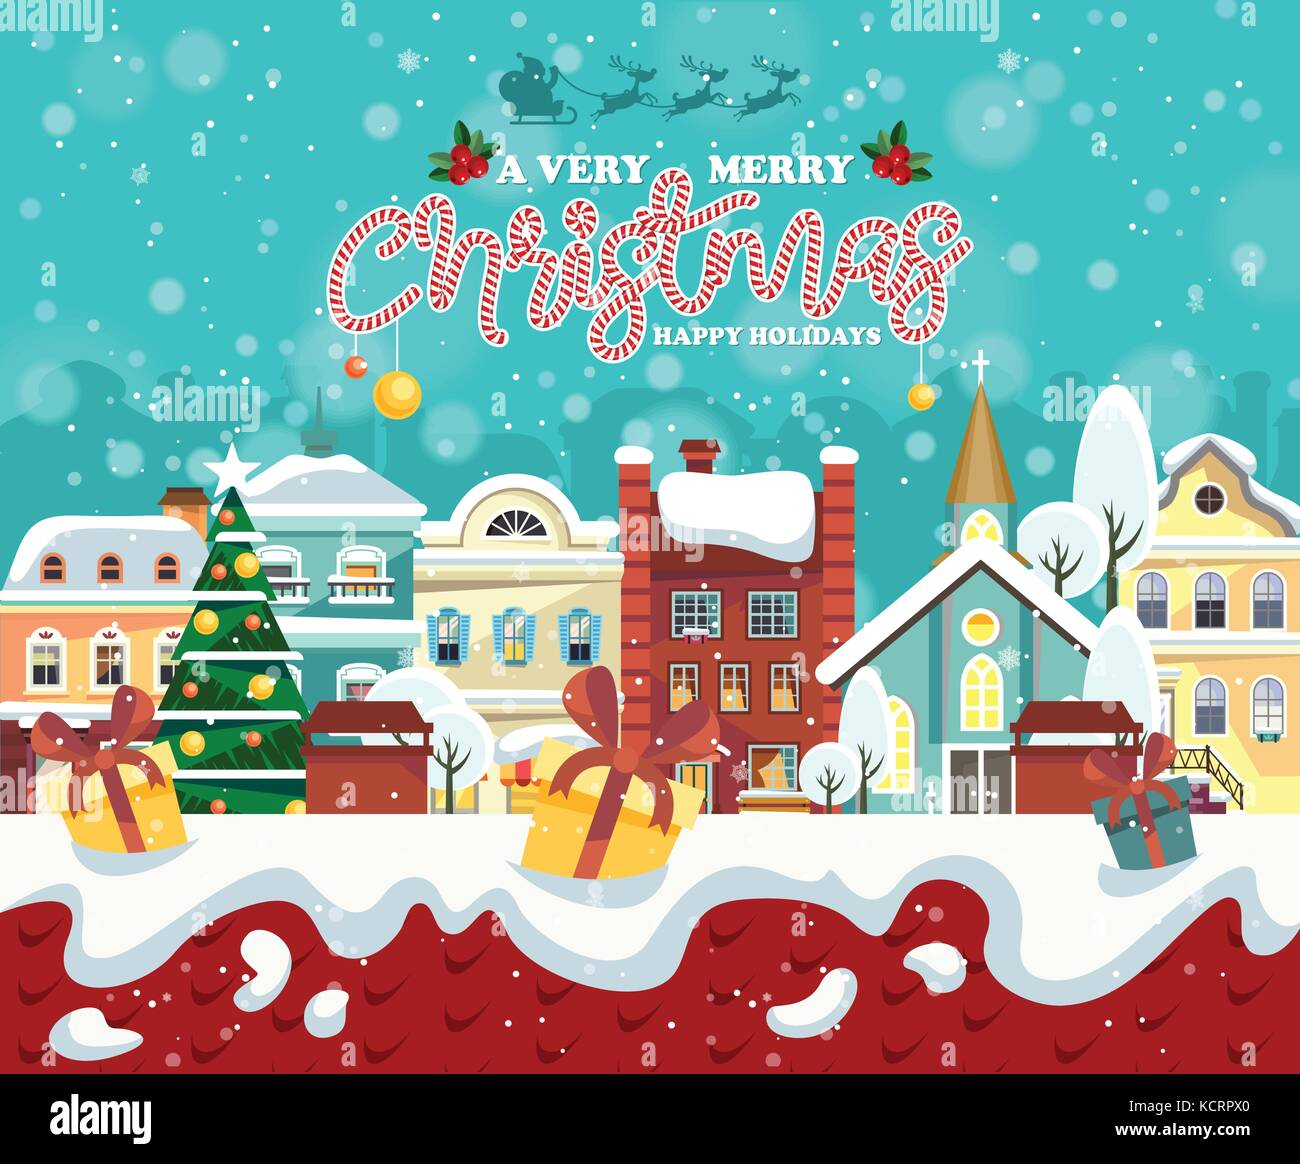 Merry christmas and happy new year vector greeting card in flat merry christmas and happy new year vector greeting card in flat style christmas winter town with snowflakes december town poster m4hsunfo